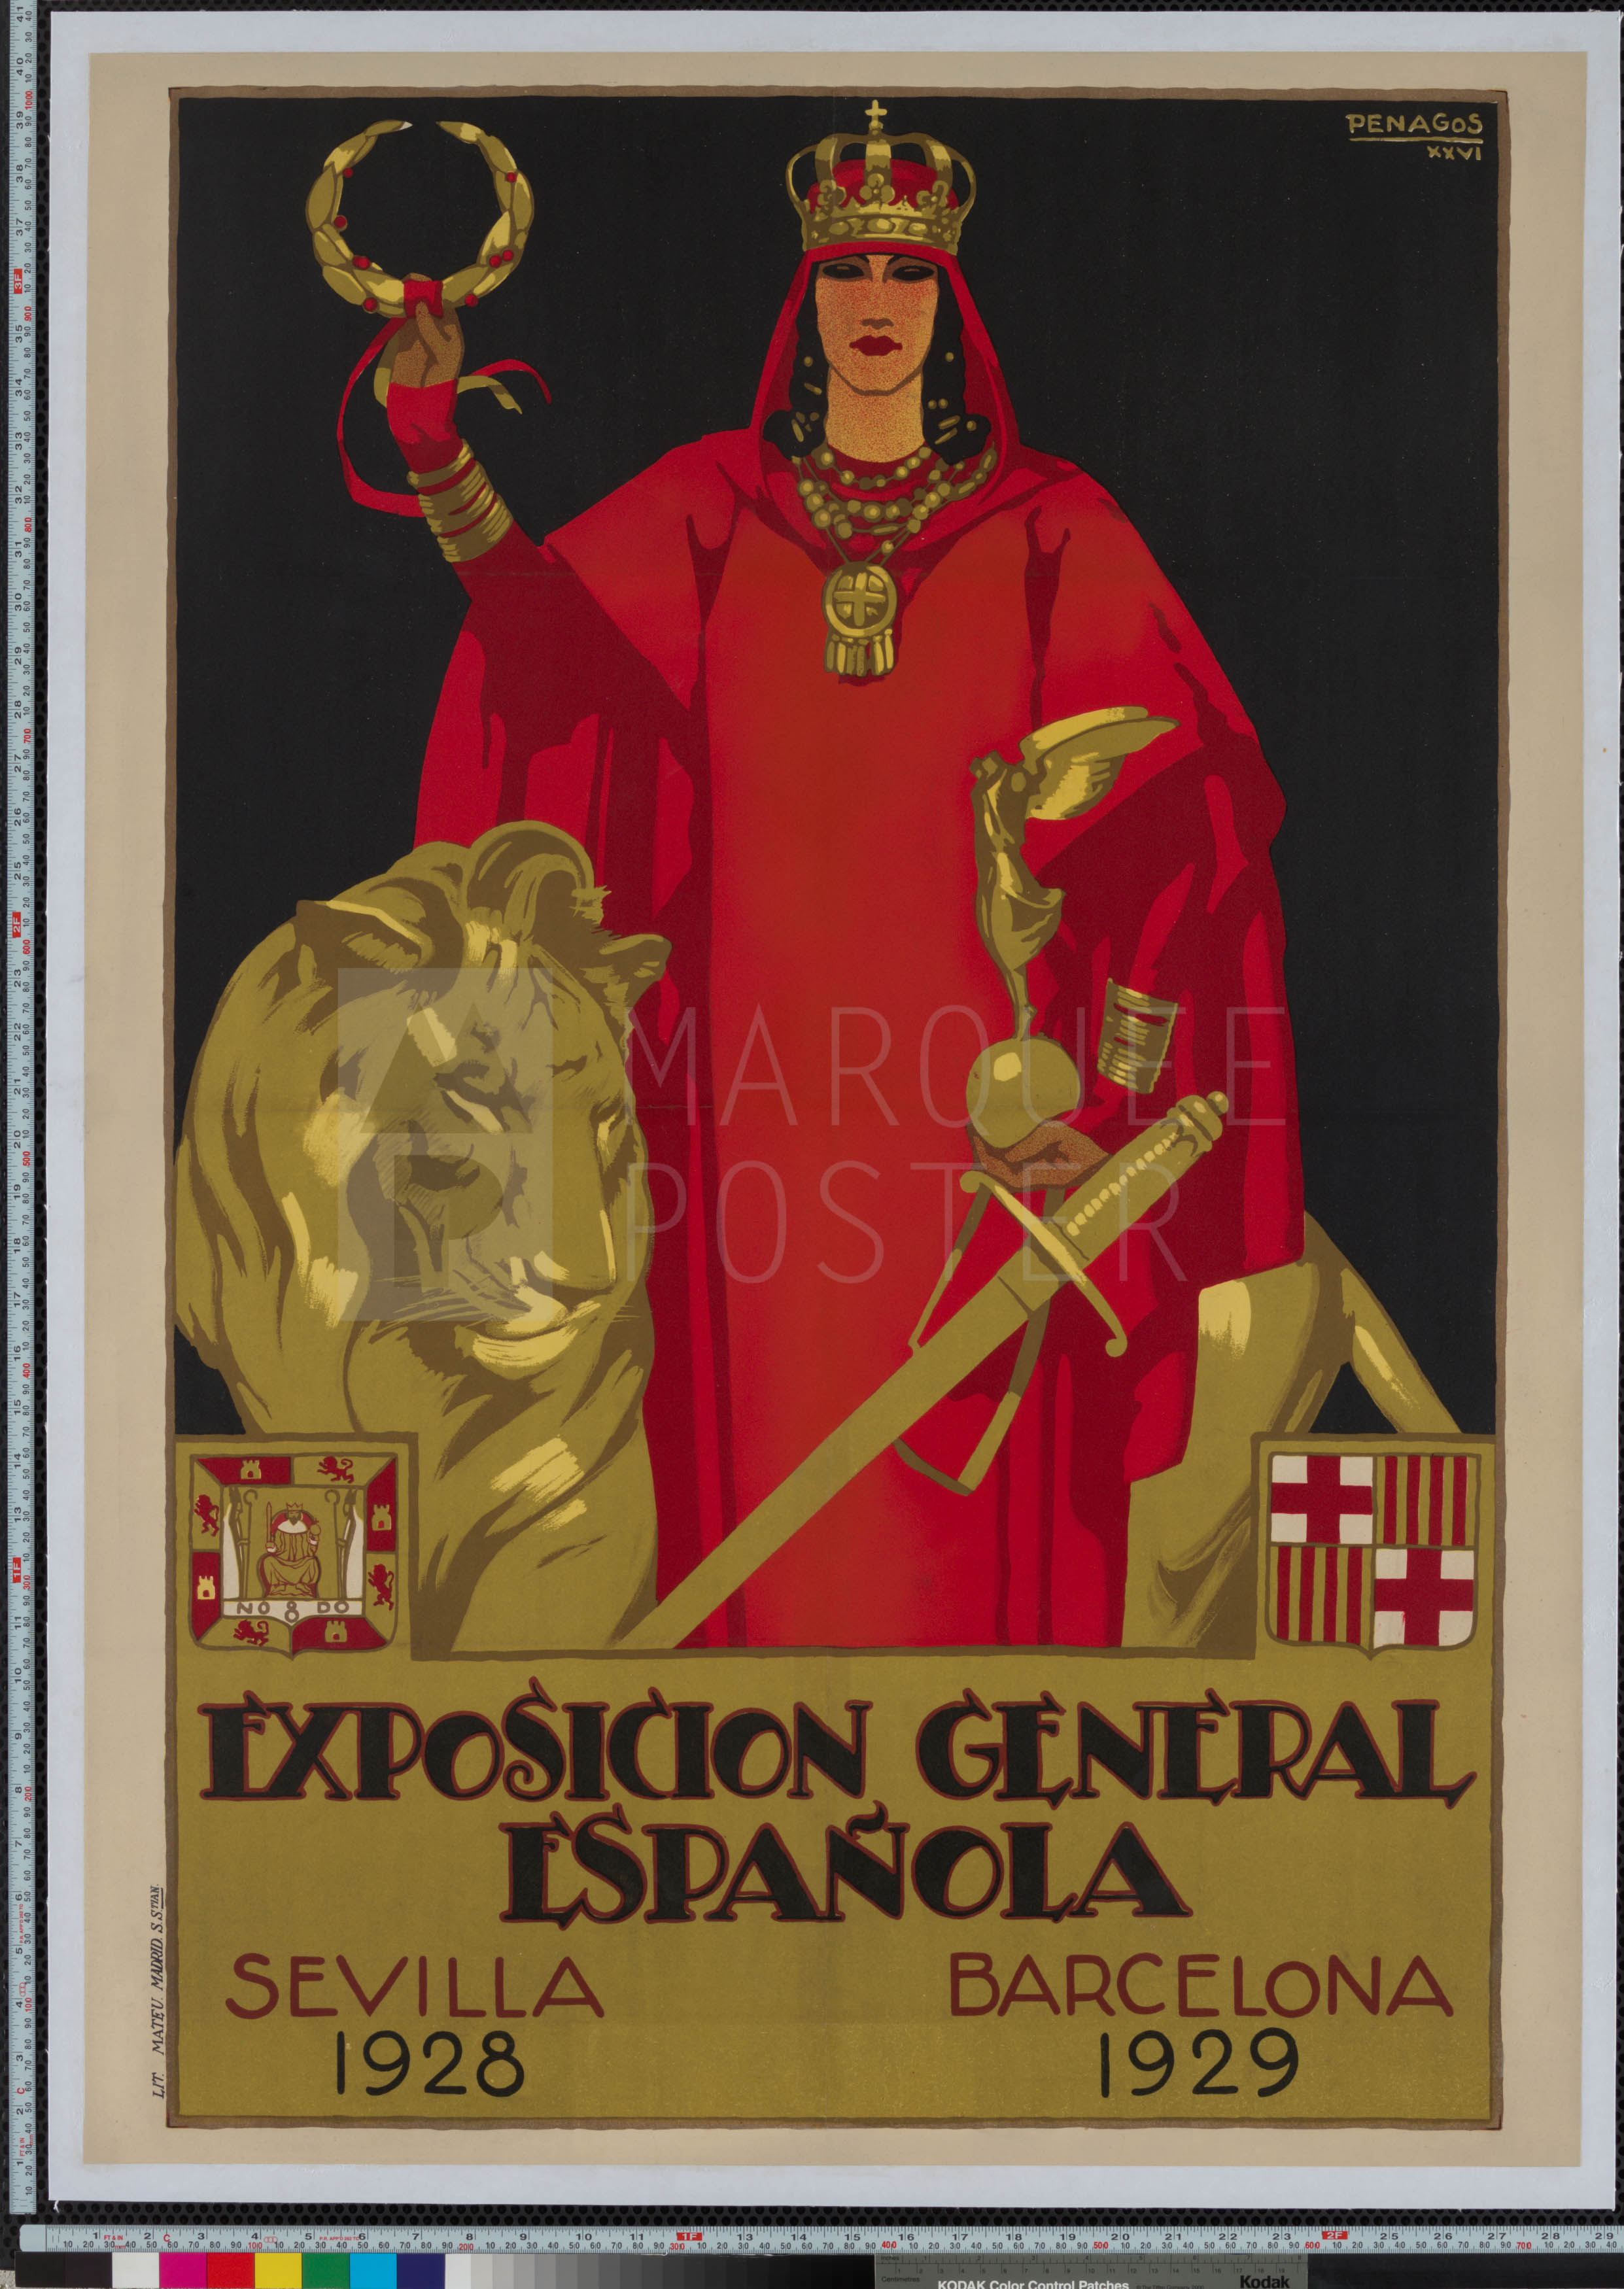 32-general-exhibition-spain-sevilla-1928-barcelona-1929-spanish-1-sheet-1929-02